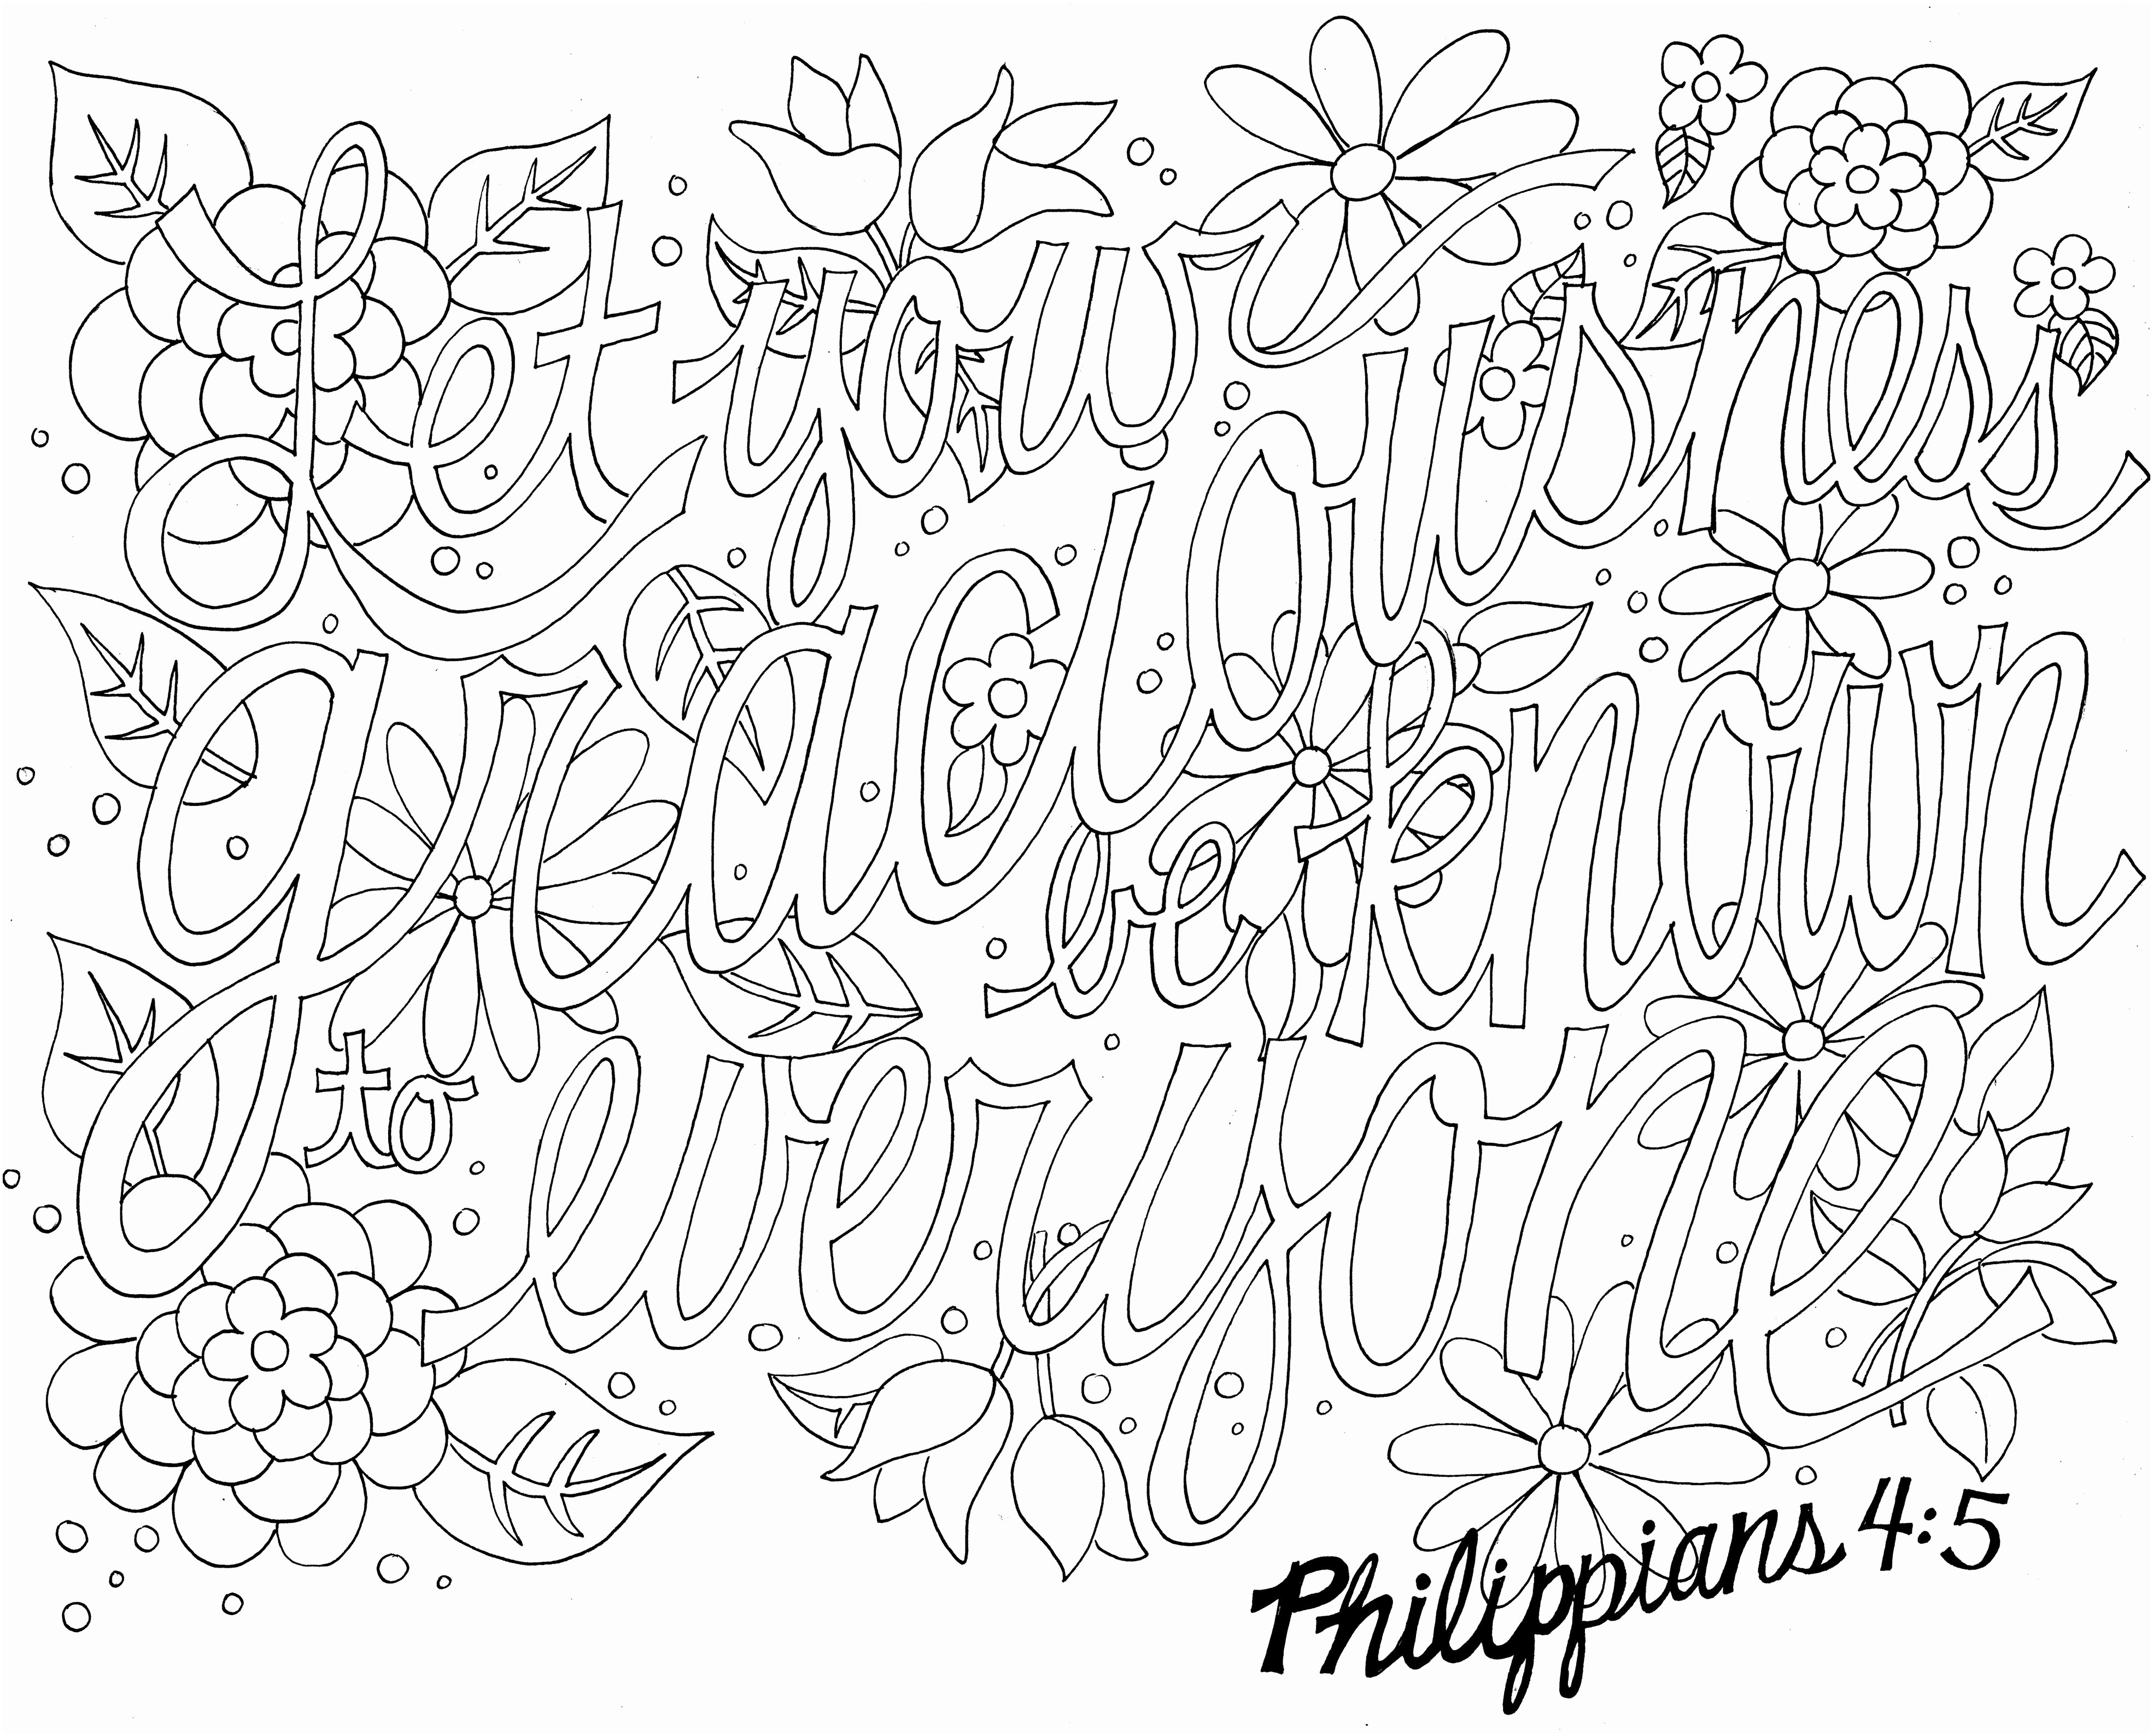 bible coloring pages free Collection-Bible Verse Coloring Pages Free Bible Coloring Pages Inspirational Cool Coloring Pages Bible 19-a